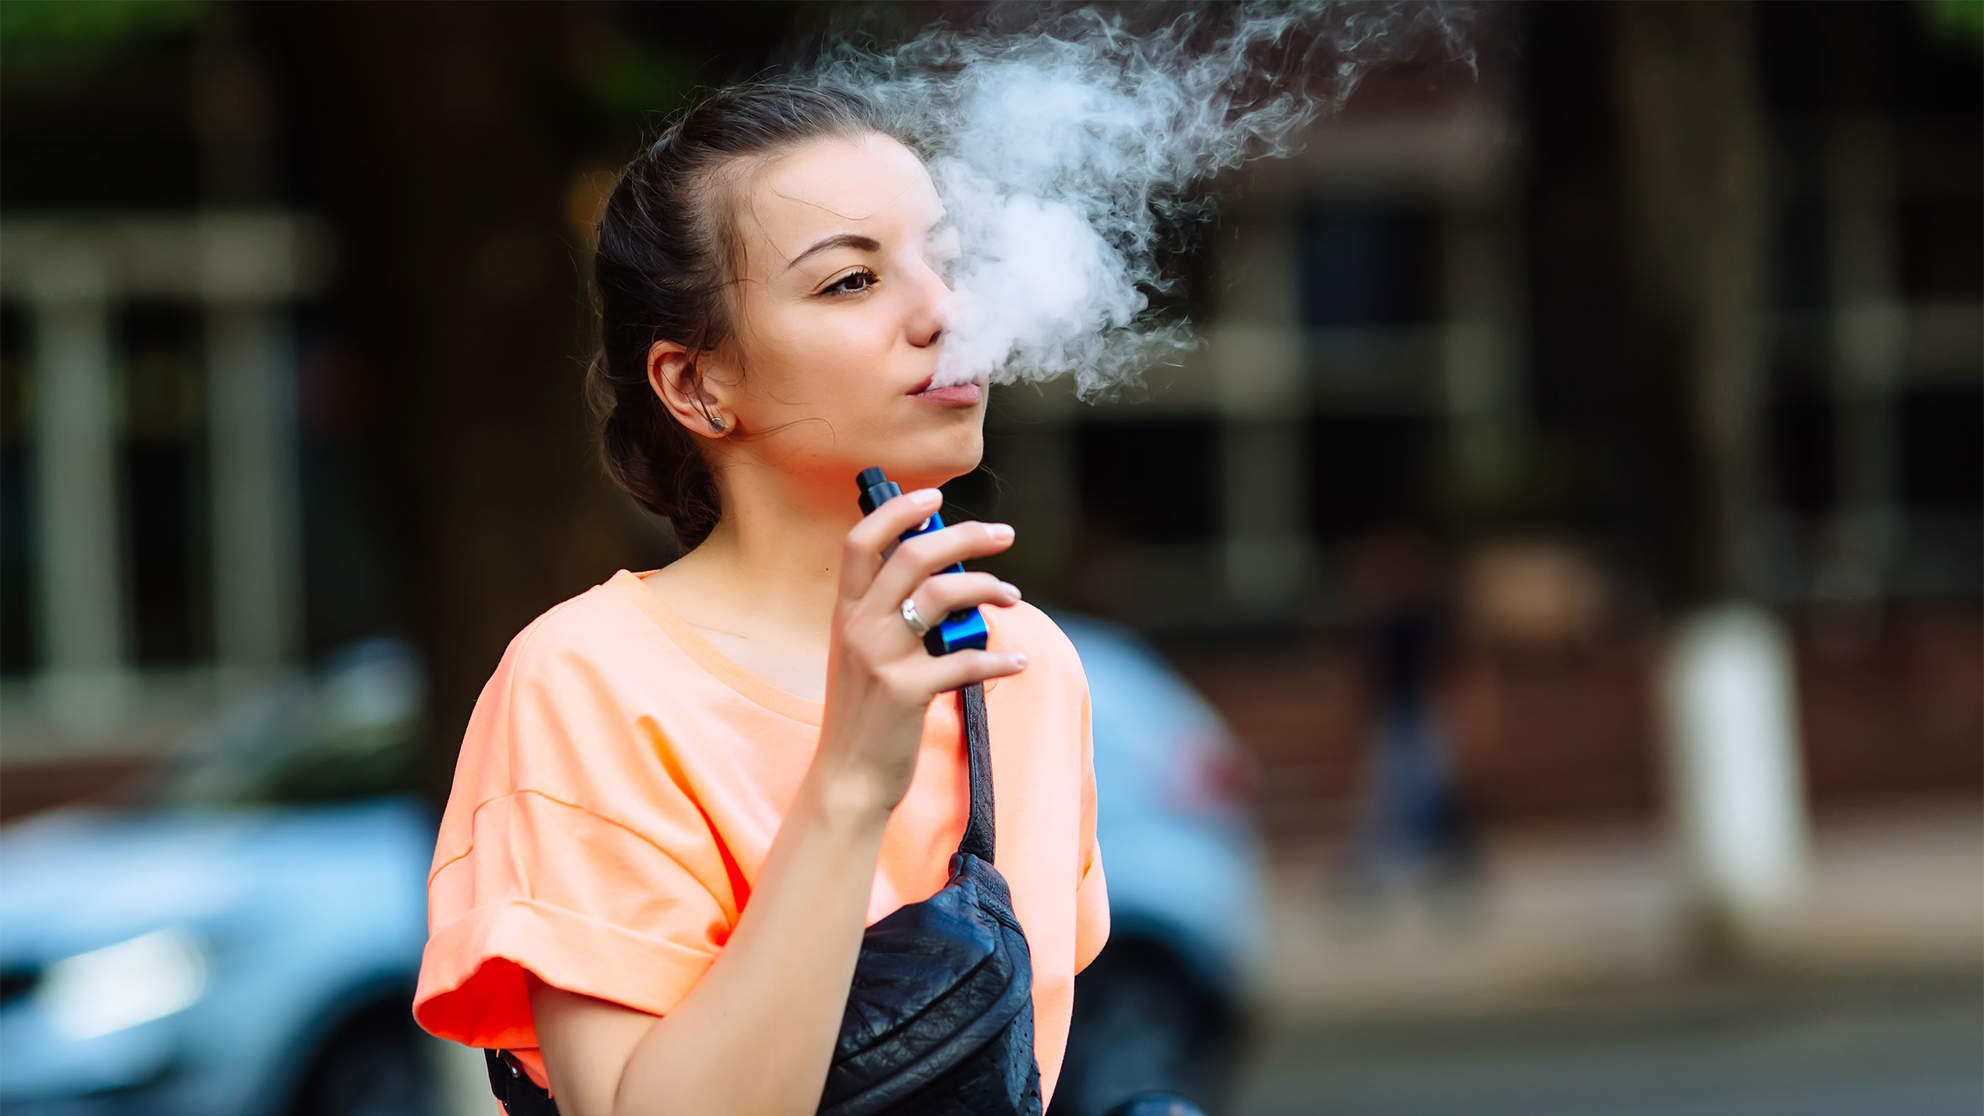 Sixth Person Dies of Severe Lung Illness, CDC Says to Stop Vaping as They Investigate 450 Cases